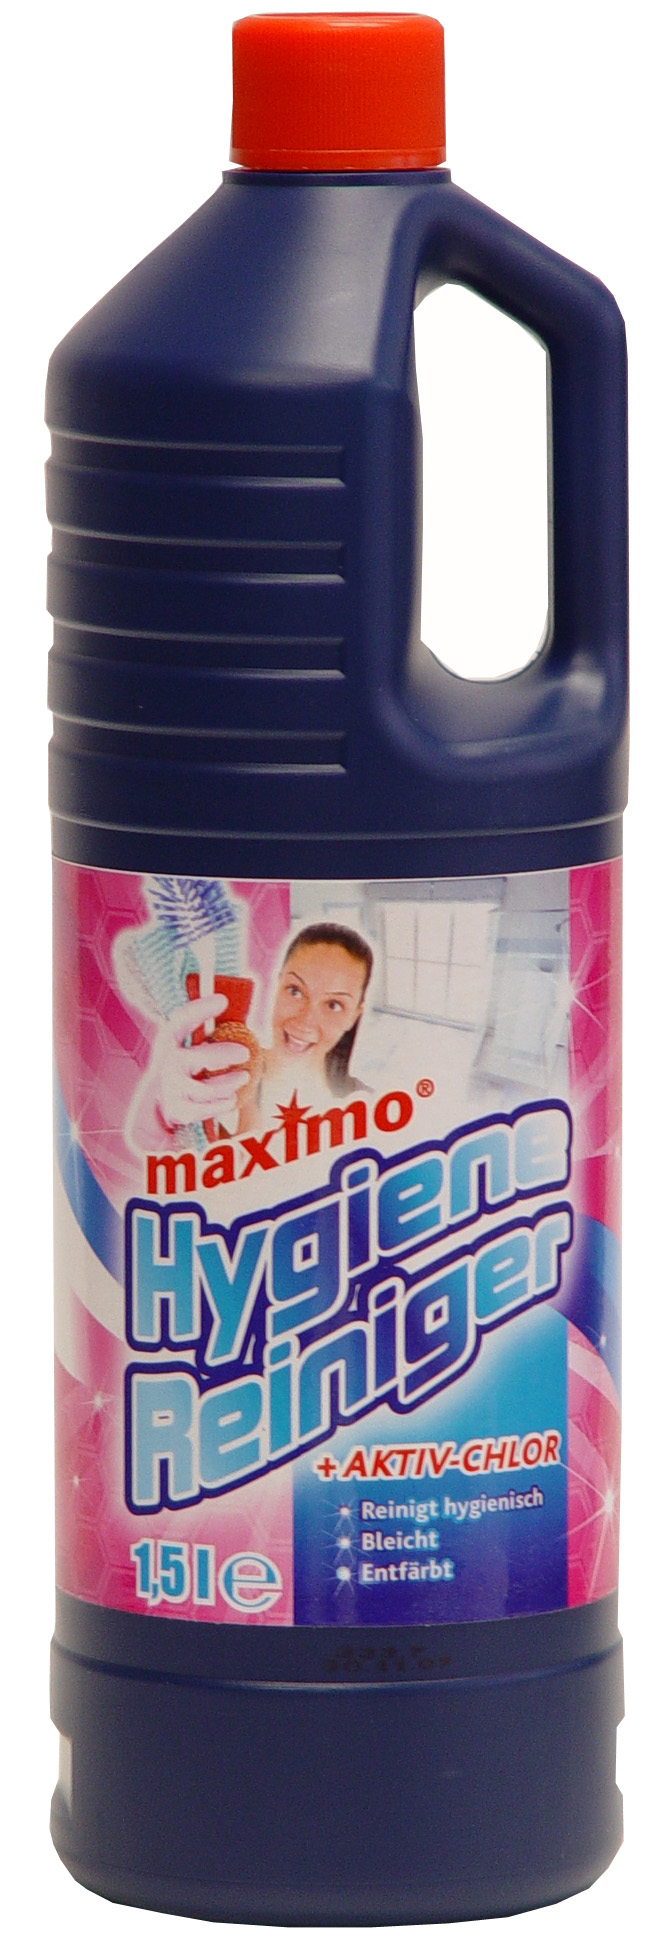 01887 - active chlorine hygiene cleaner 1500 ml